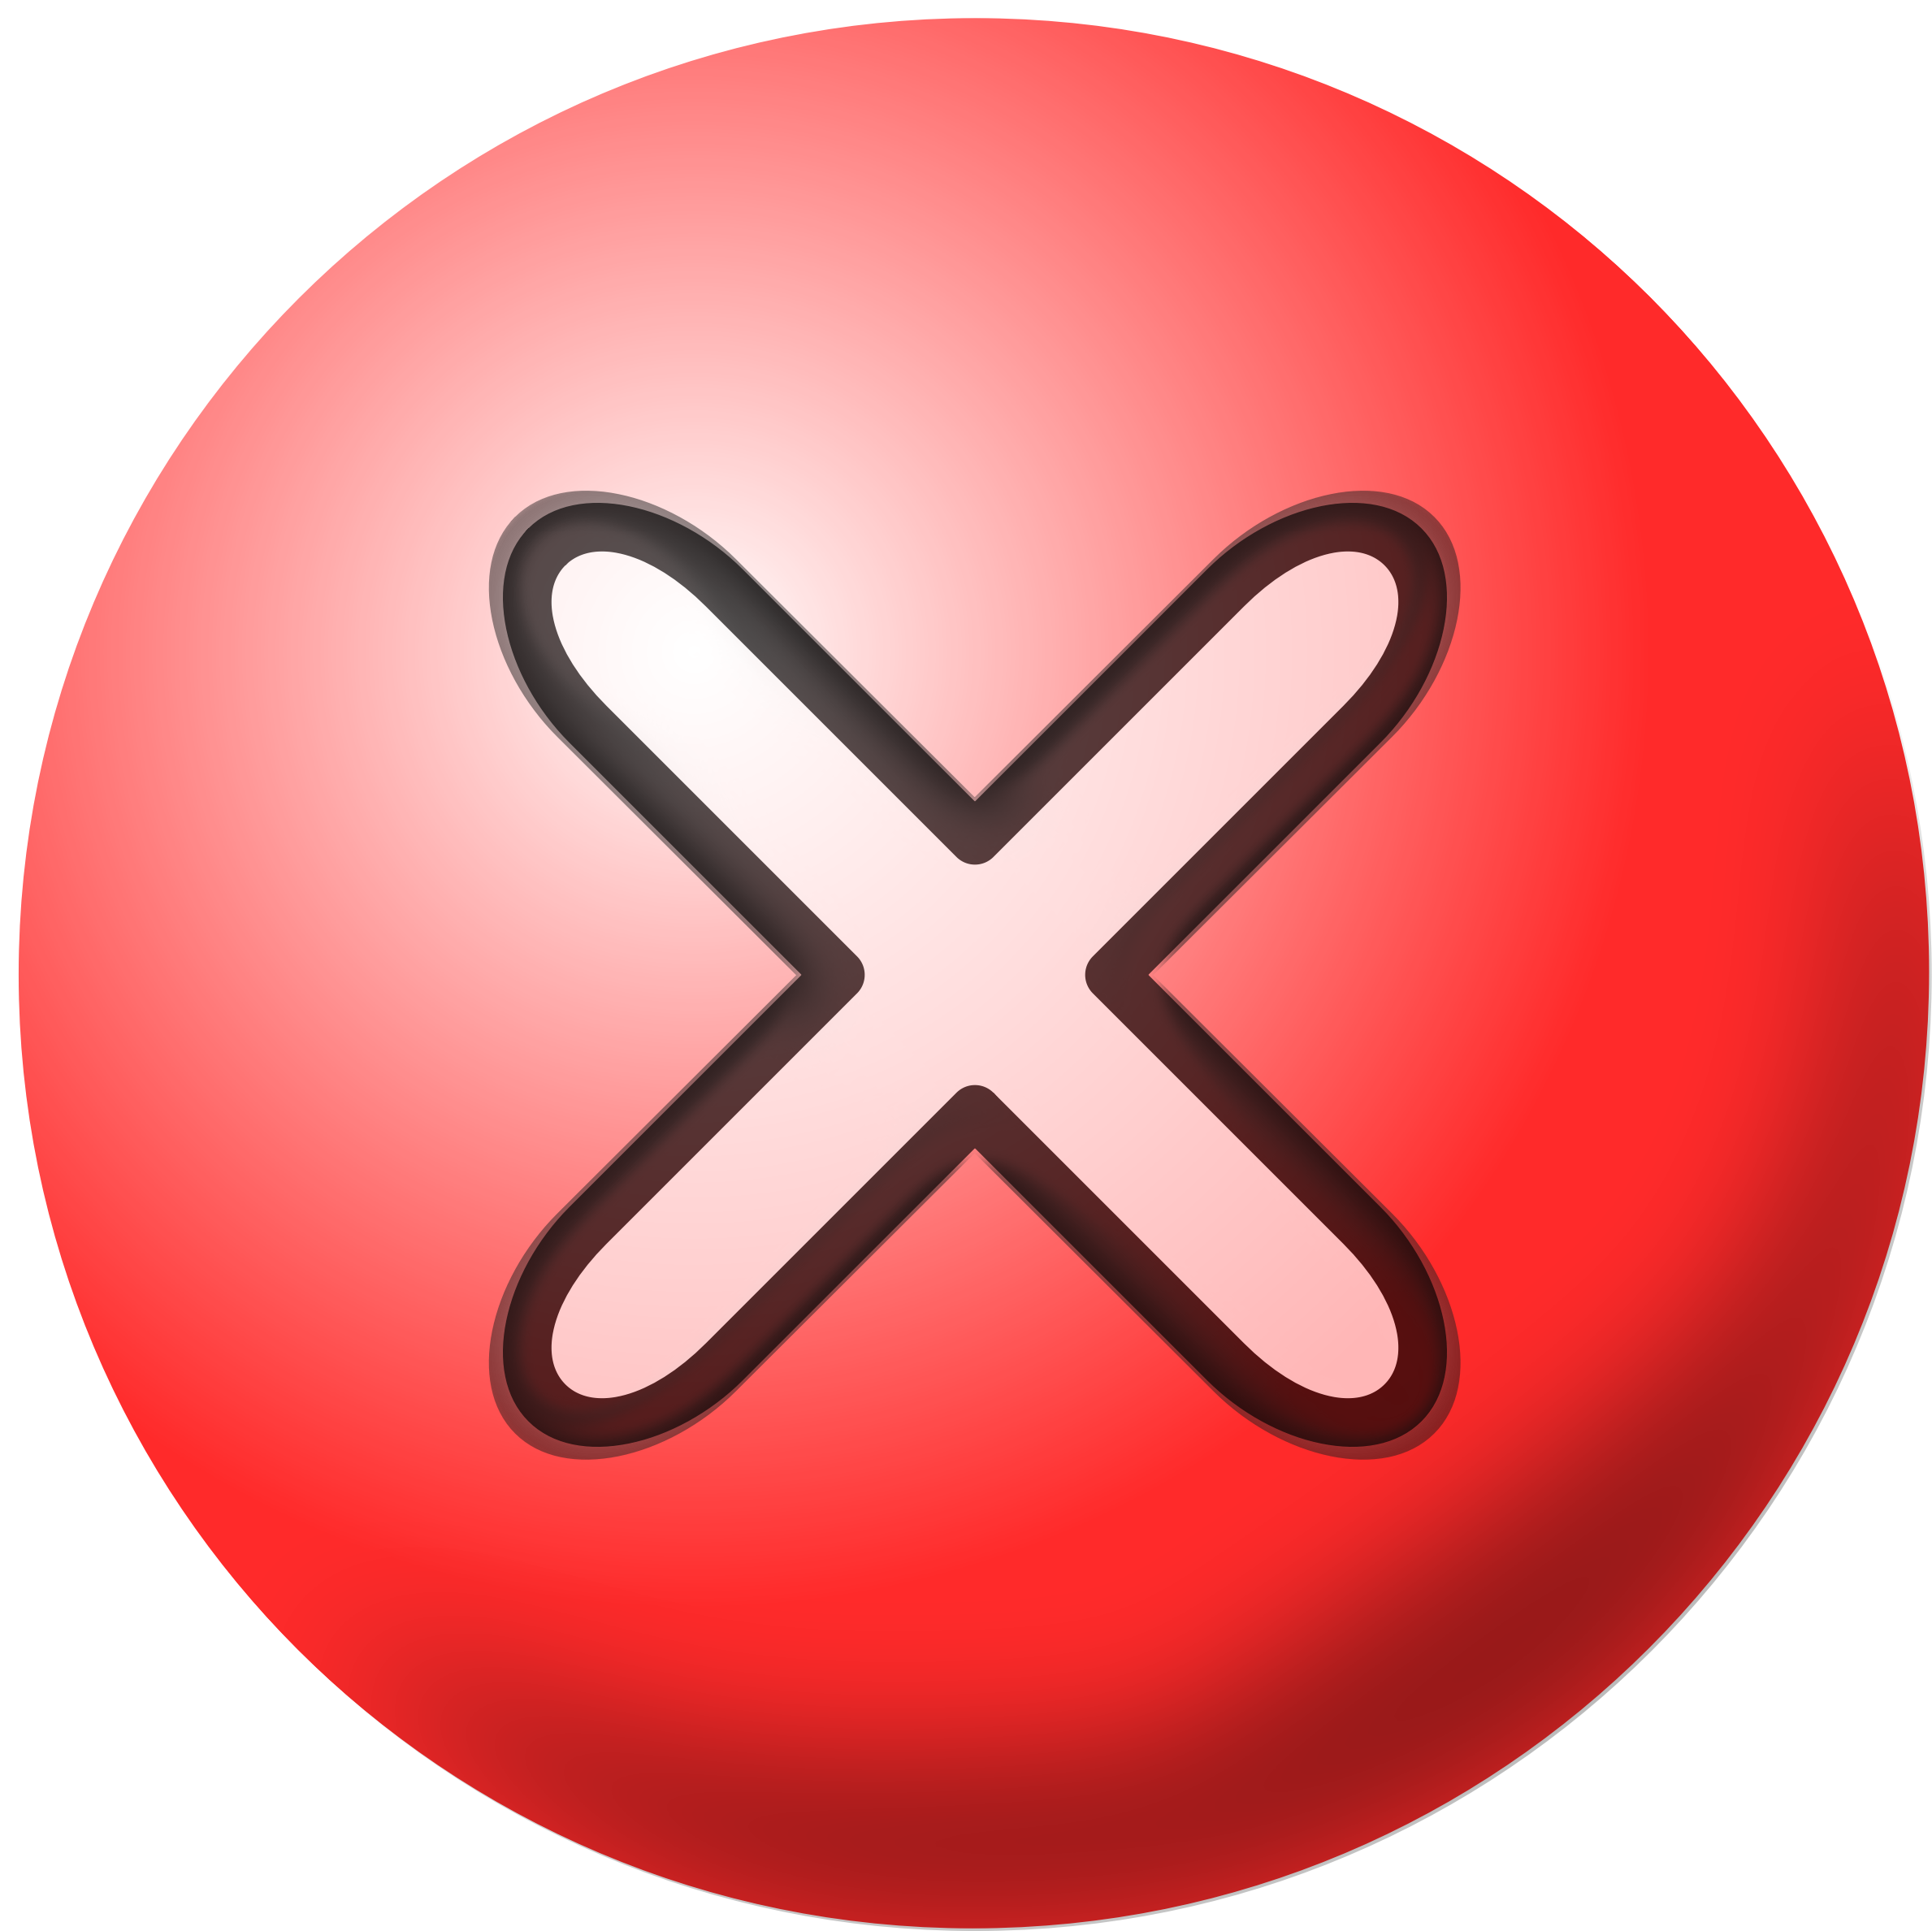 Red x icon by isaiah658